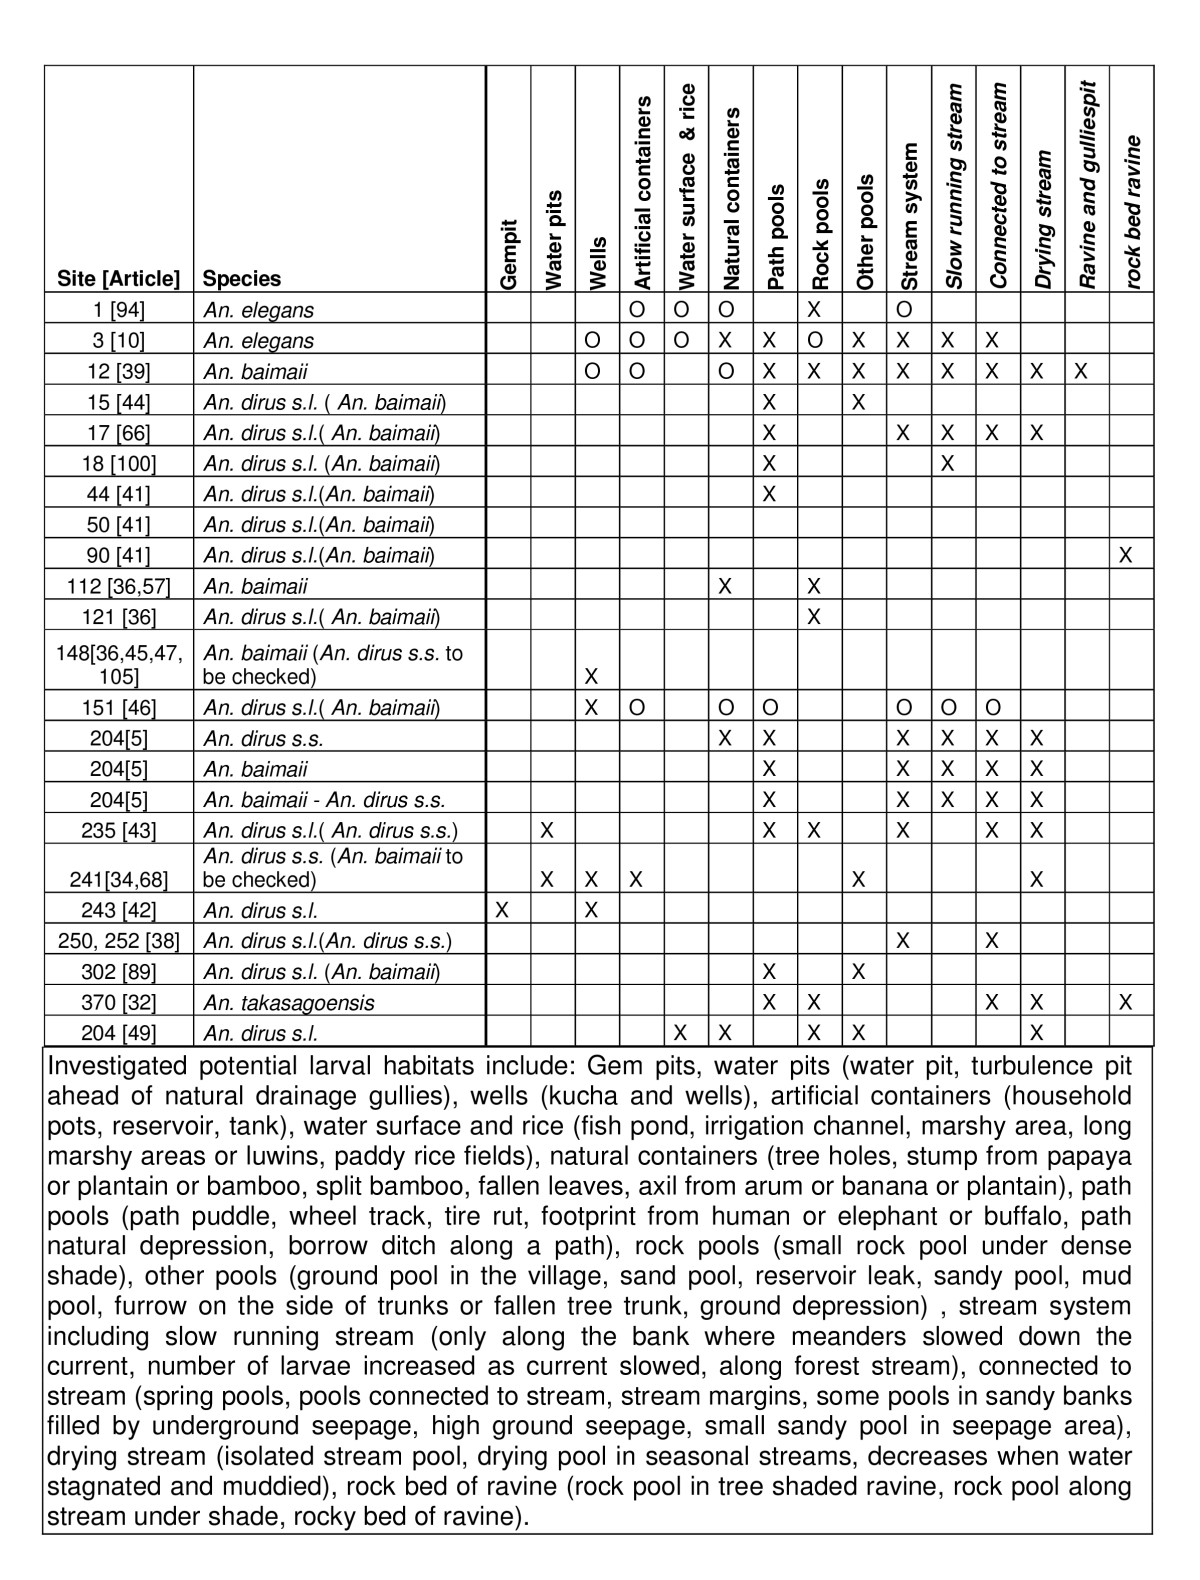 http://static-content.springer.com/image/art%3A10.1186%2F1475-2875-6-26/MediaObjects/12936_2006_Article_331_Fig4_HTML.jpg